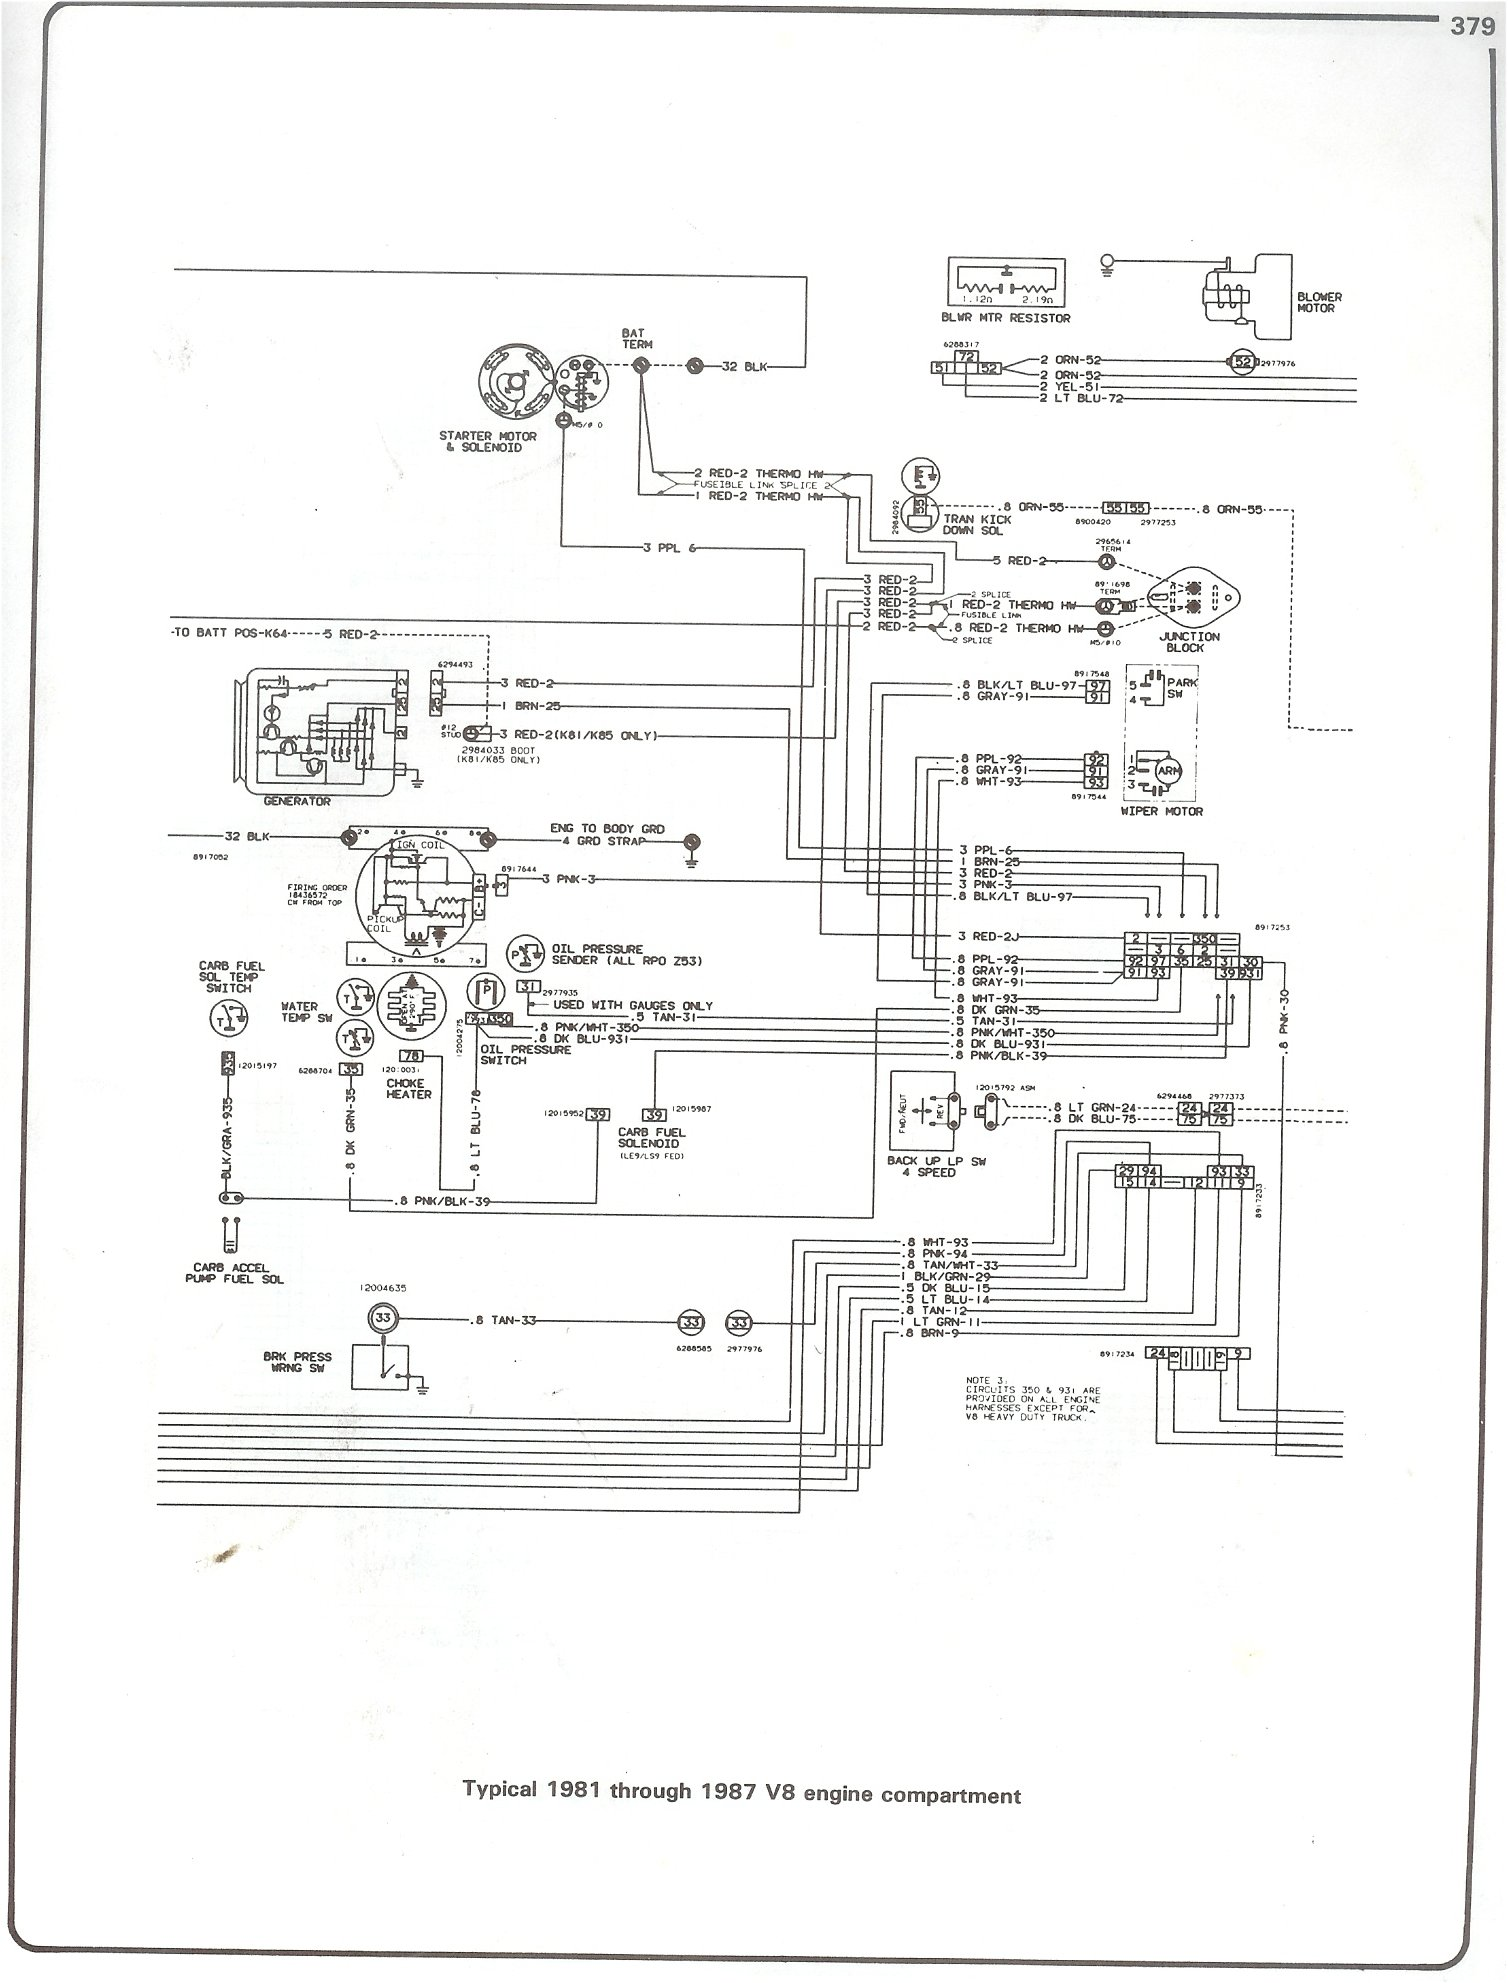 81 87_V8_engine complete 73 87 wiring diagrams 1987 chevy wiring diagram at bayanpartner.co